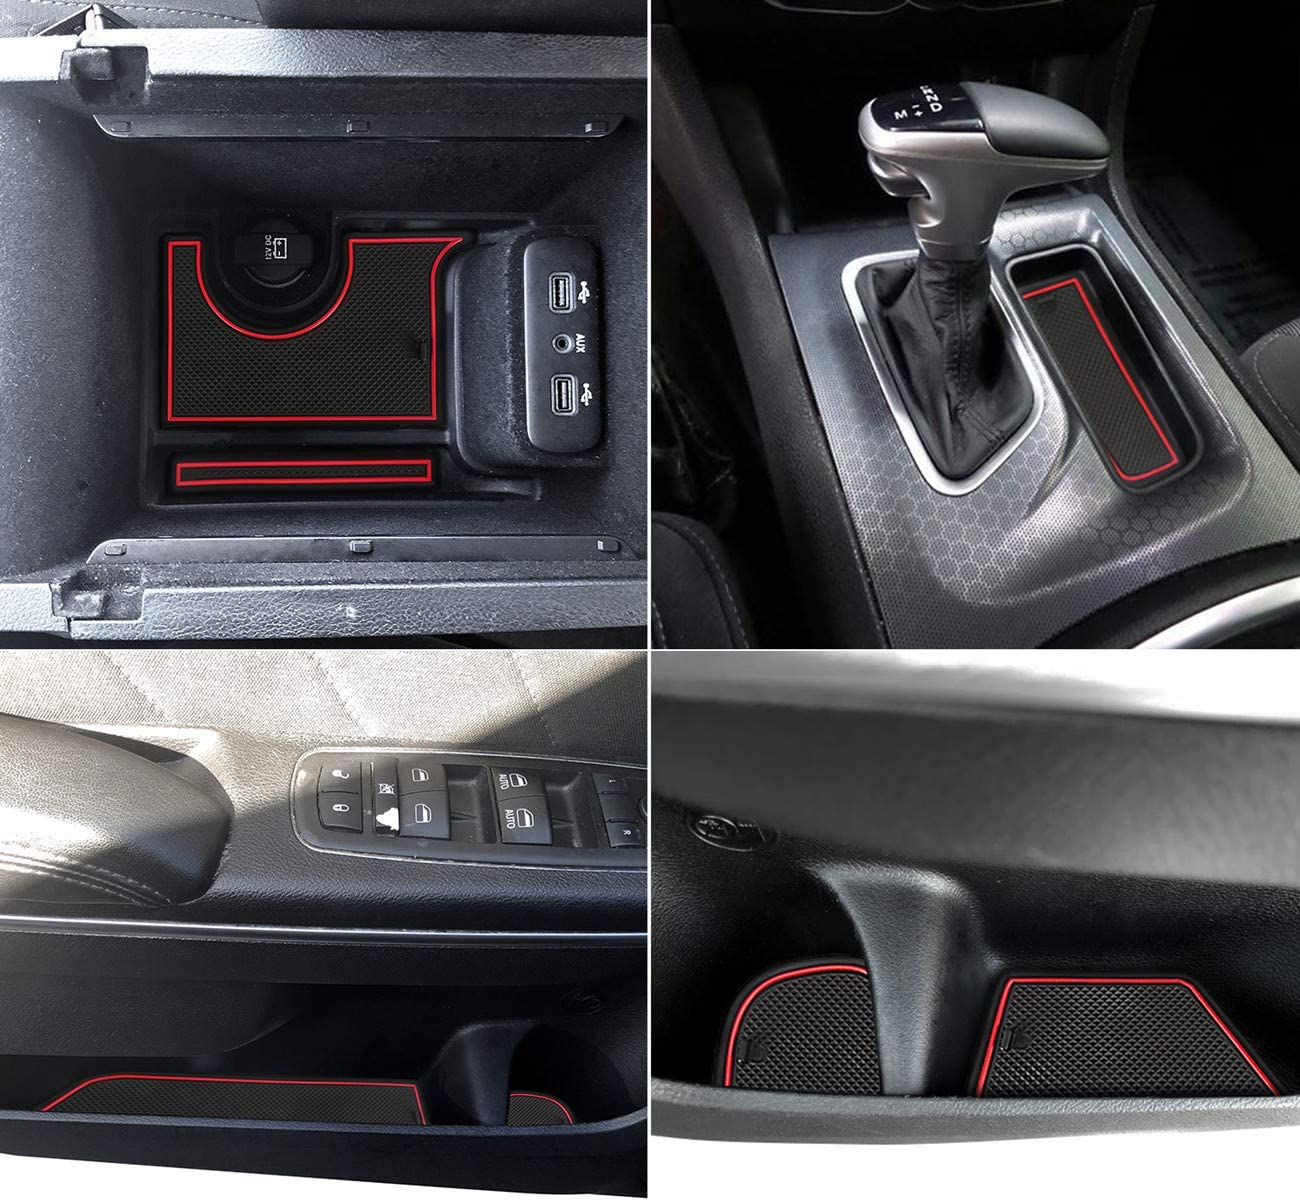 JOJOY LUX 22 pcs Custom Fit Cup Red Trim and Console Interior Liner Accessories for 2015-2020 Dodge Charger,Cup Holder Insert /& Center Console Shifter Liner Trim Mats Door